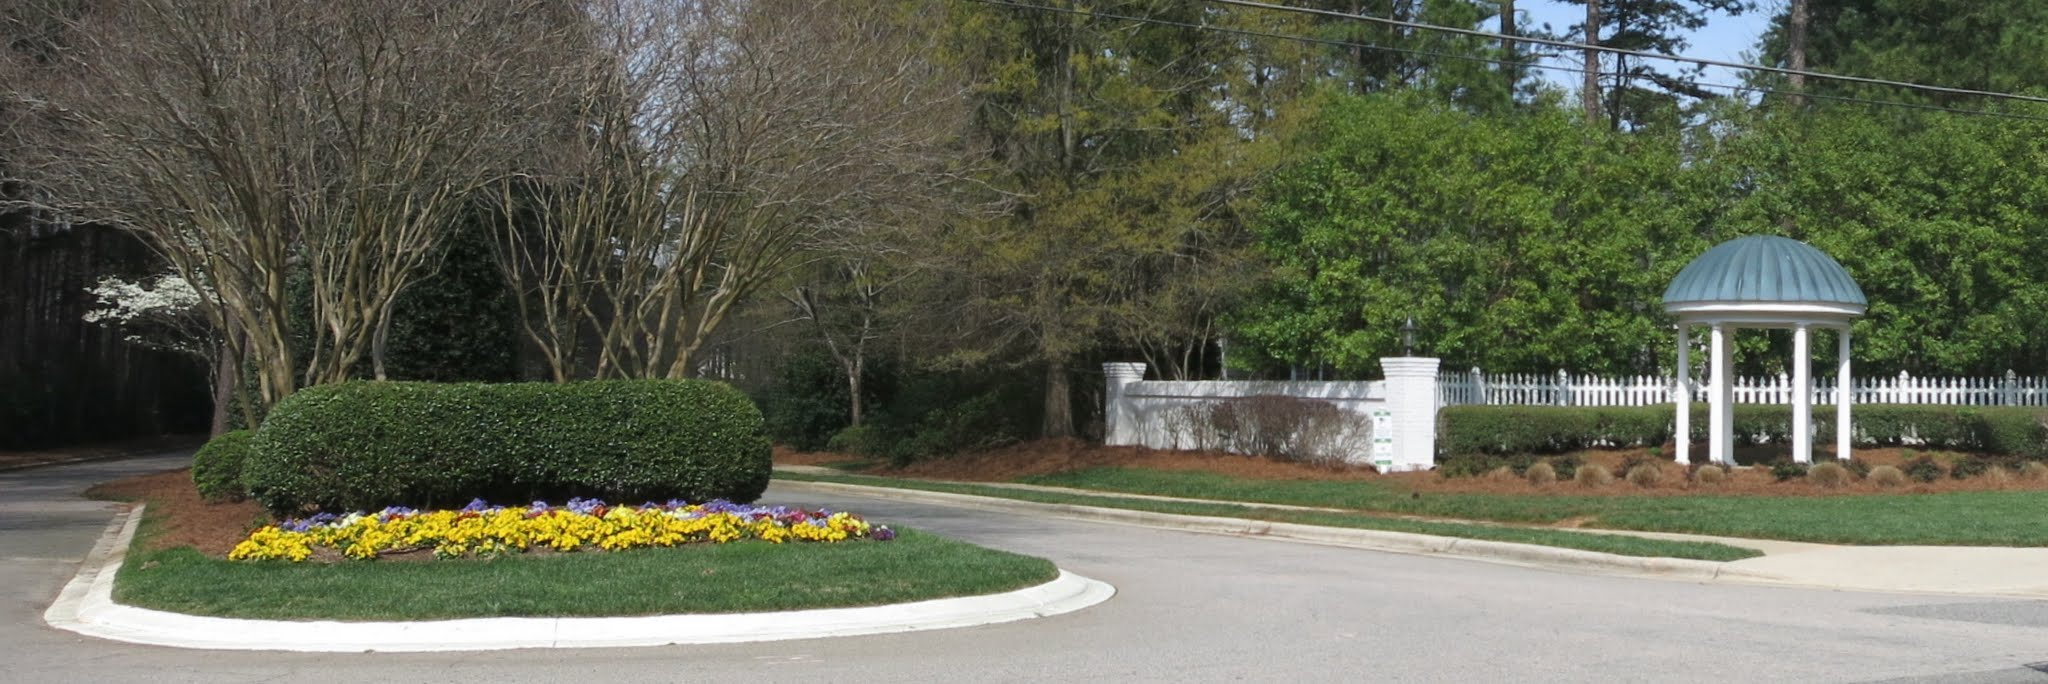 Bent Tree Entrance from Strickland Road, Best Raleigh Neighborhoods, Midtown, Bent Tree